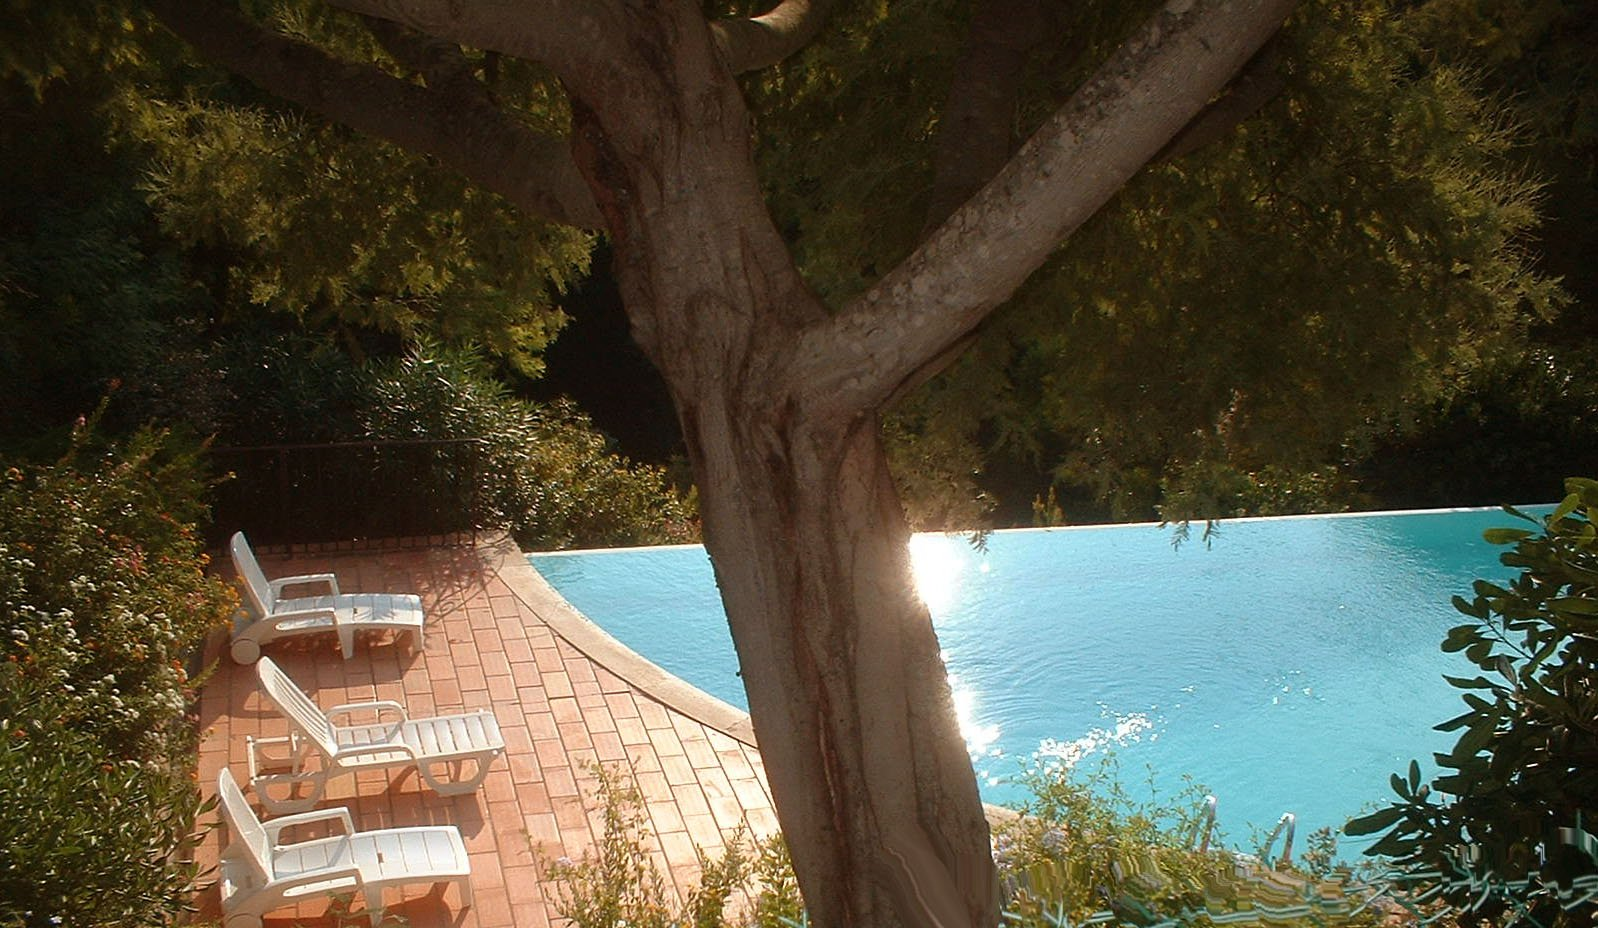 Studio provencial style - 2 sleeps Beautiful sea viewn Stil - 2 Schlafplätze Schöner Meerblick  * ROCA 39 *